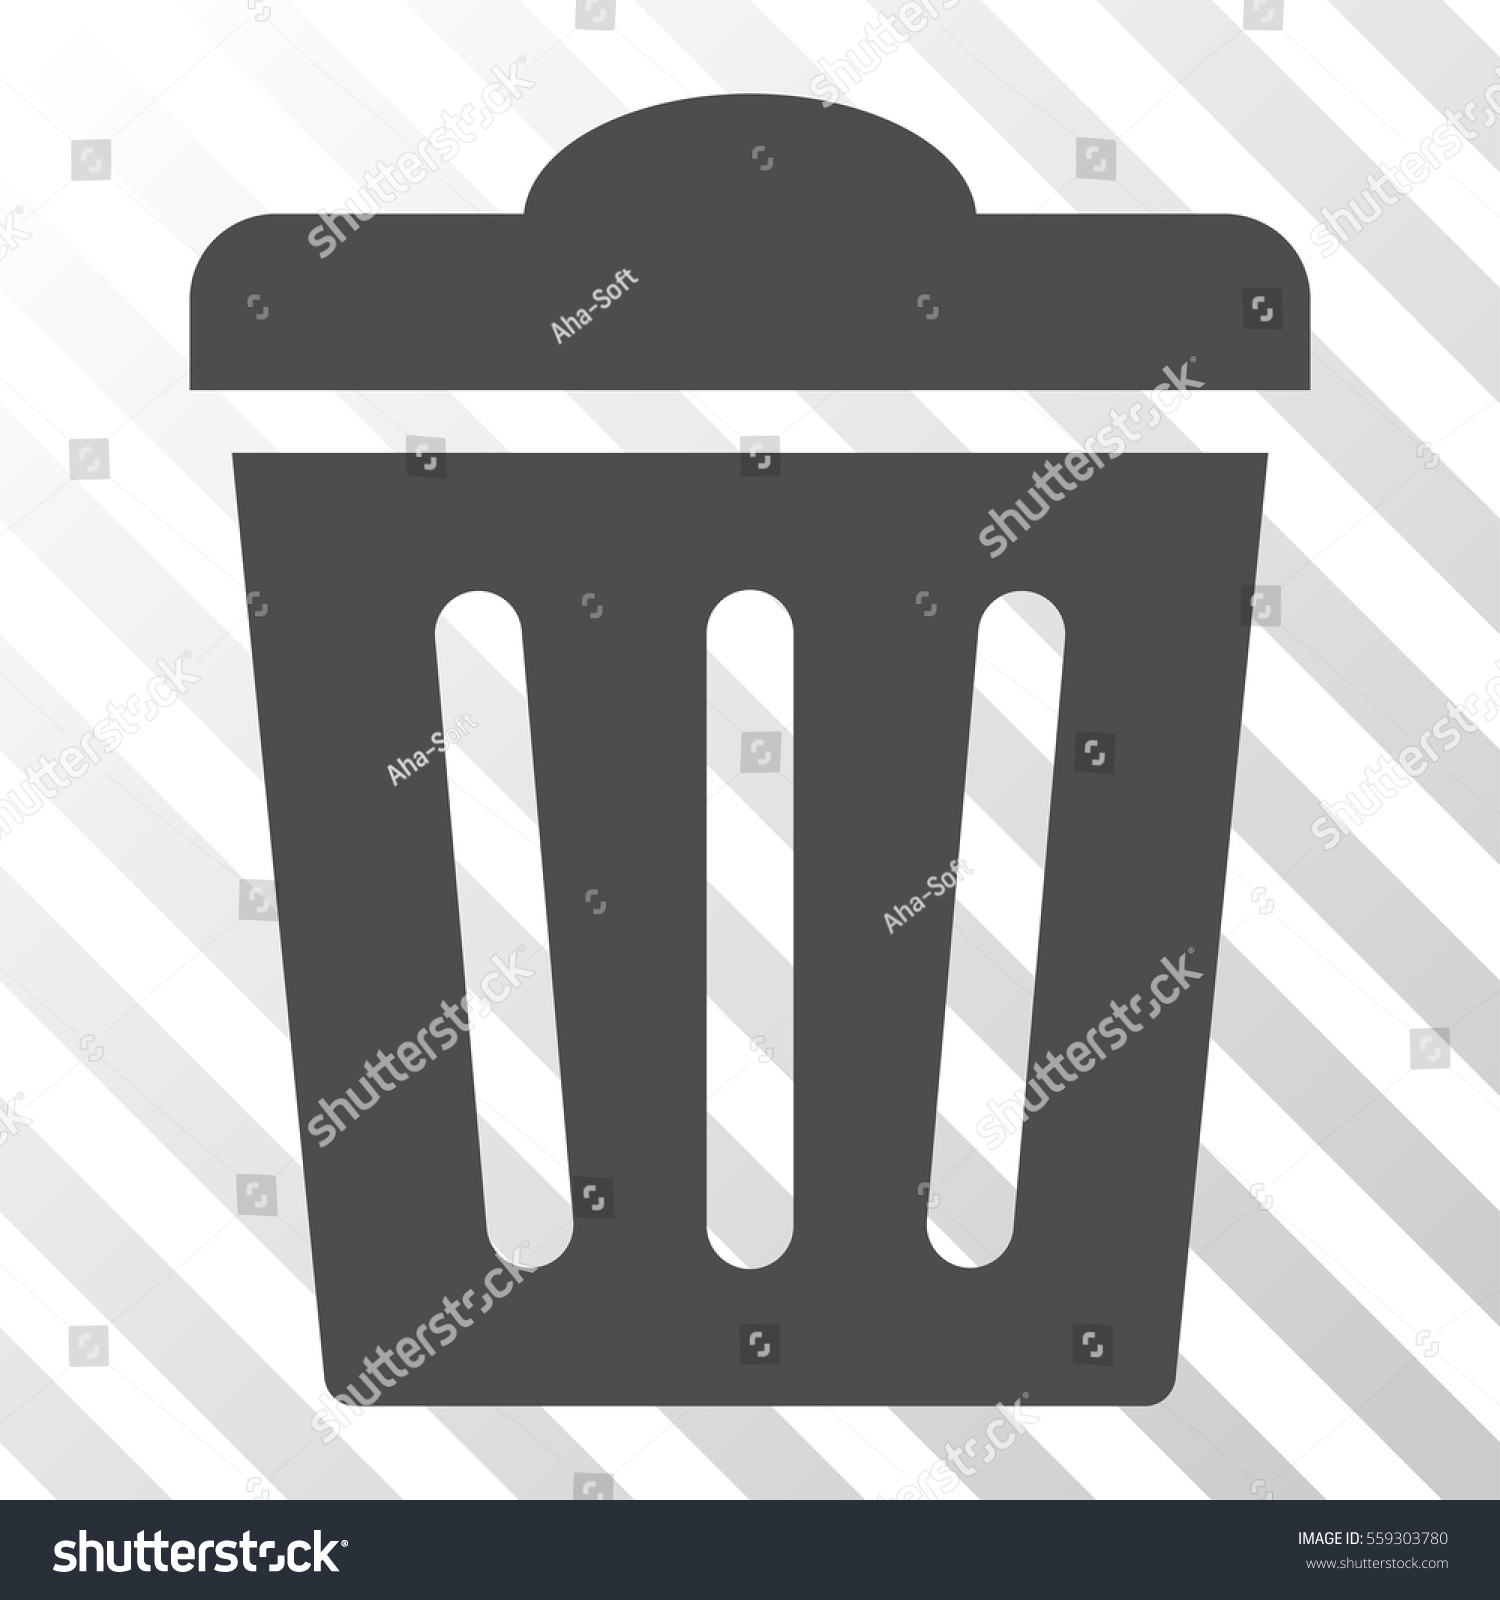 gray trash can interface pictogram vector のベクター画像素材